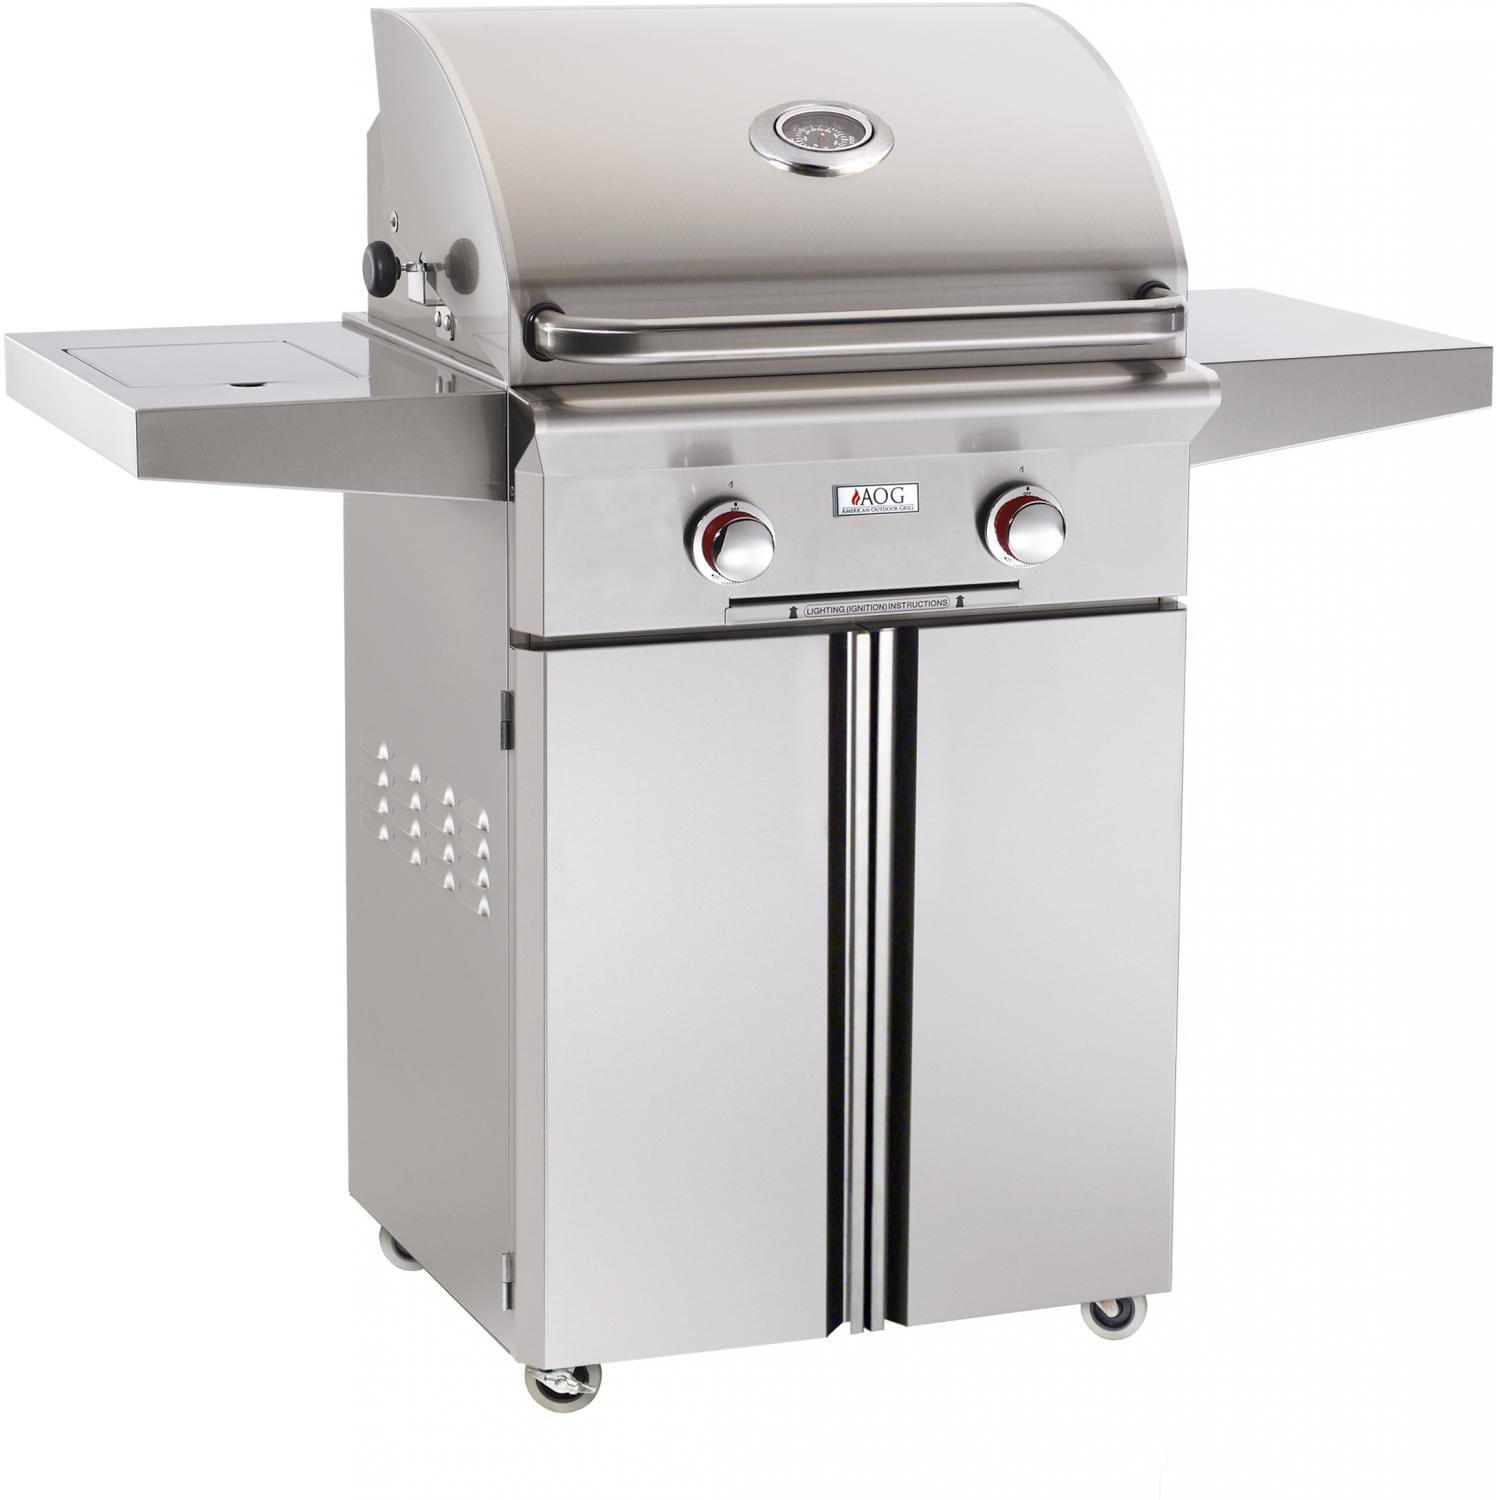 American Outdoor Grill T-Series 24-Inch Freestanding Natural Gas Grill